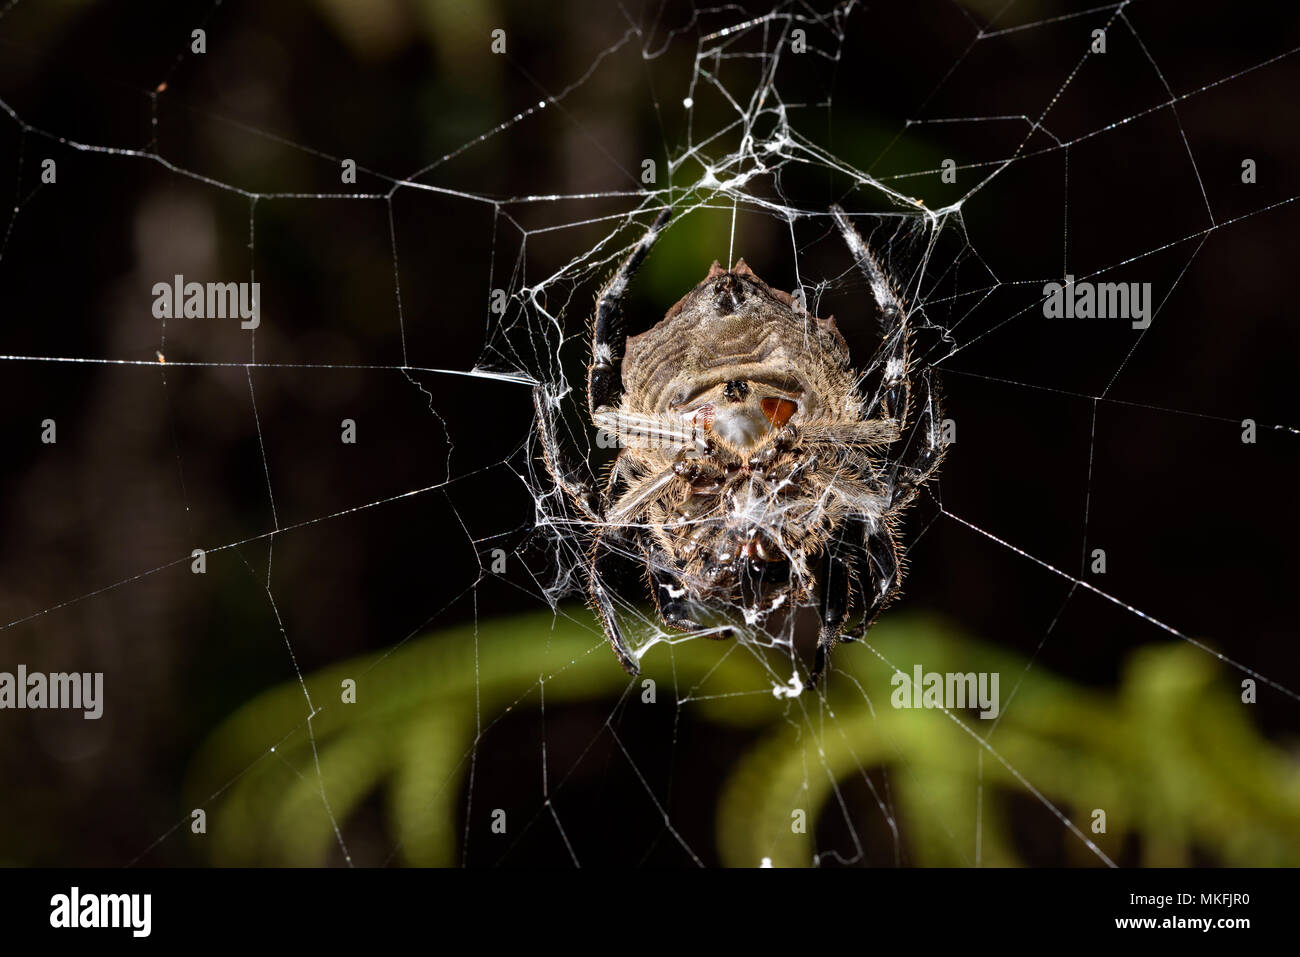 Bark spider (Caerostris extrusa) on his web, Andasibe, Perinet, Alaotra-Mangoro Region, Madagascar - Stock Image